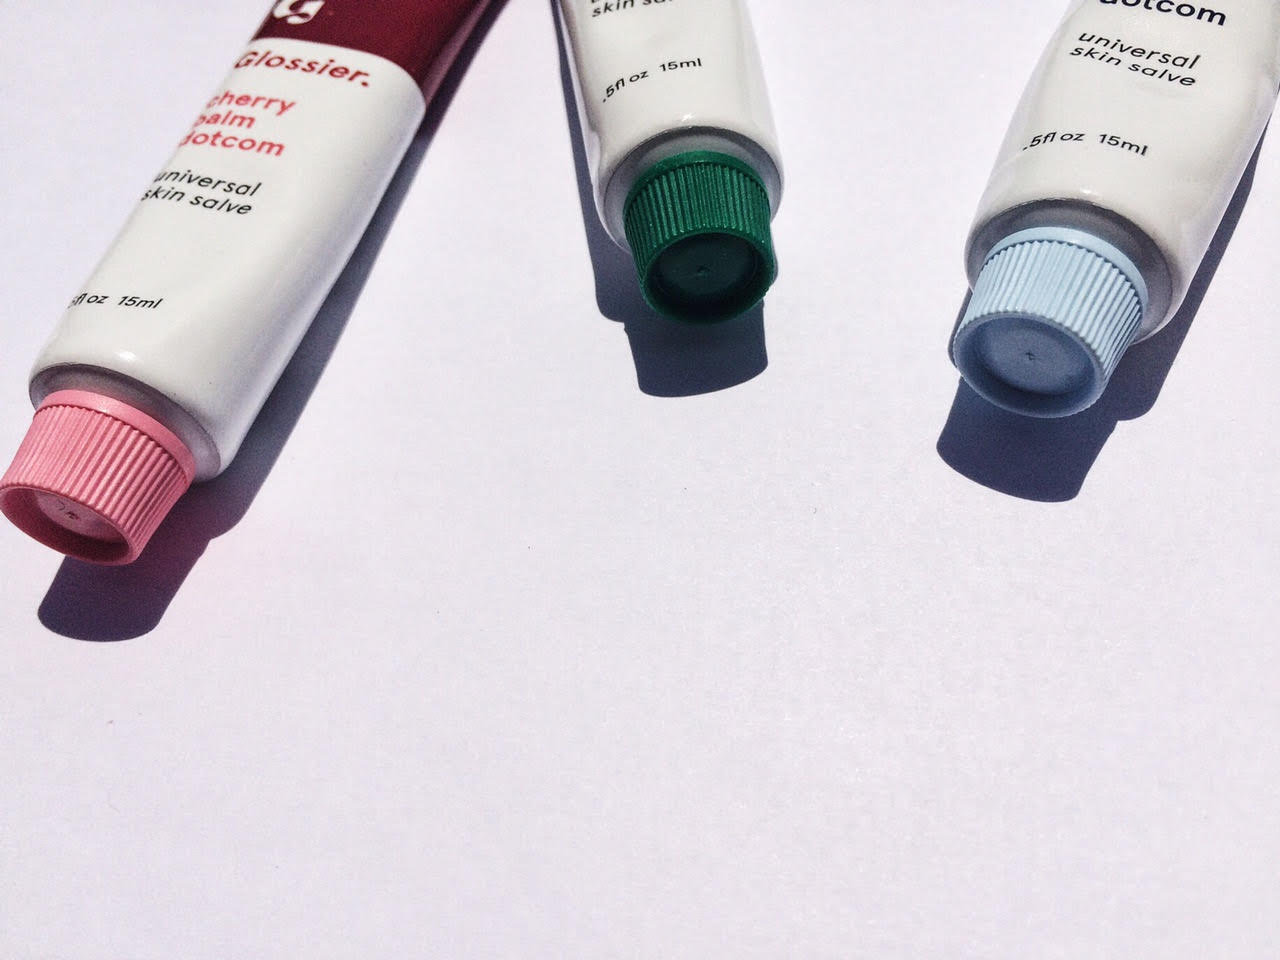 Introducing GLossier Lip Balms